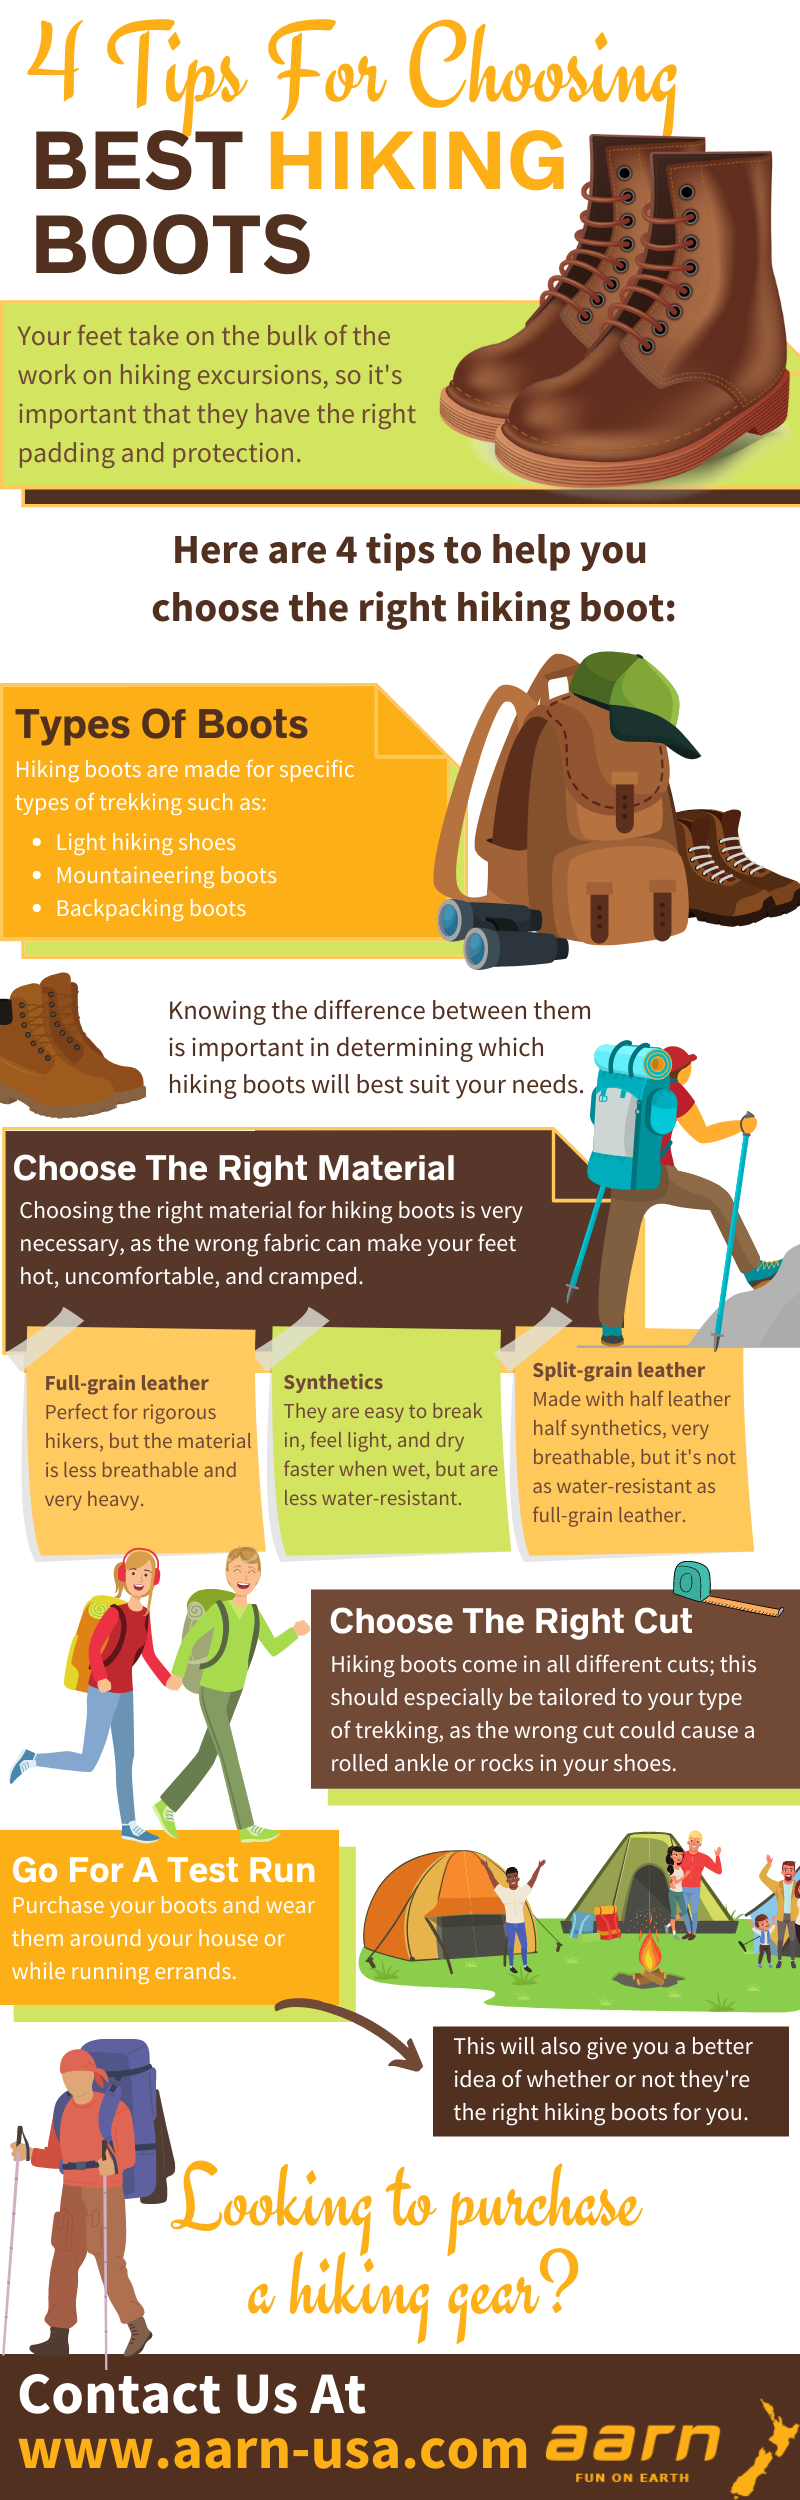 4 Tips For Choosing Best Hiking Boots   Infographic